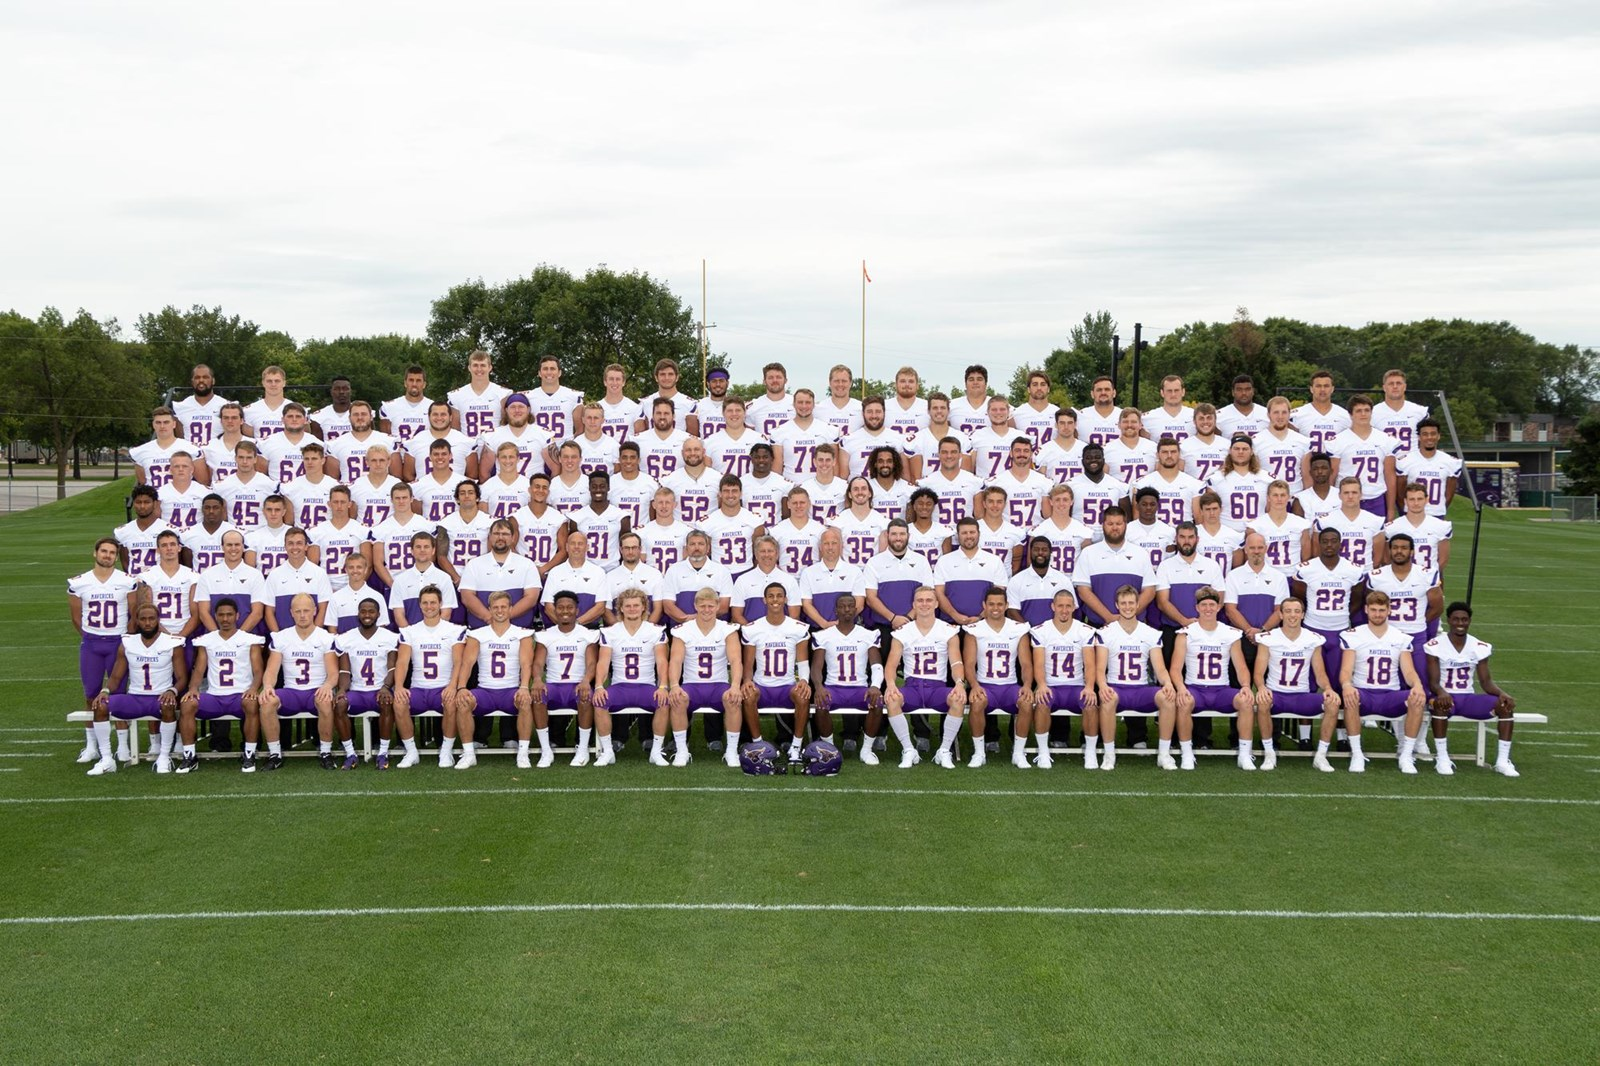 2019 Football Roster Minnesota State University Mankato Athletics